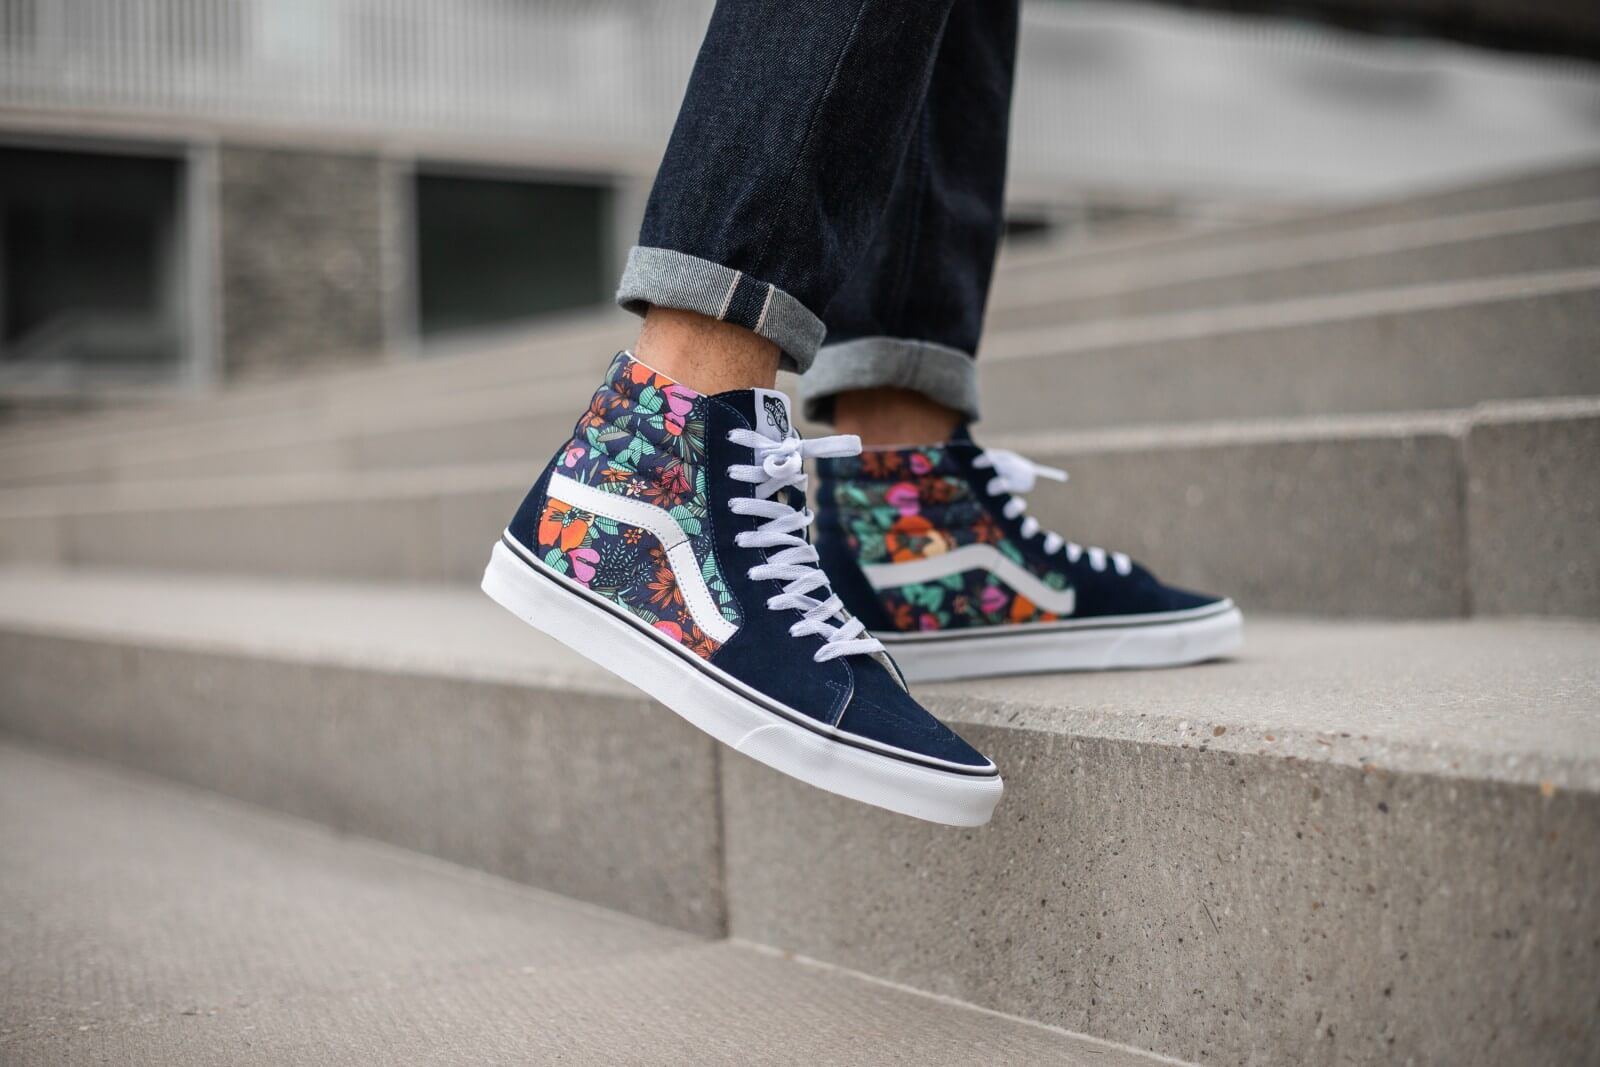 Vans Sk8-Hi Multi Tropic Dress Blue/True White - VN0A4U3CWH9